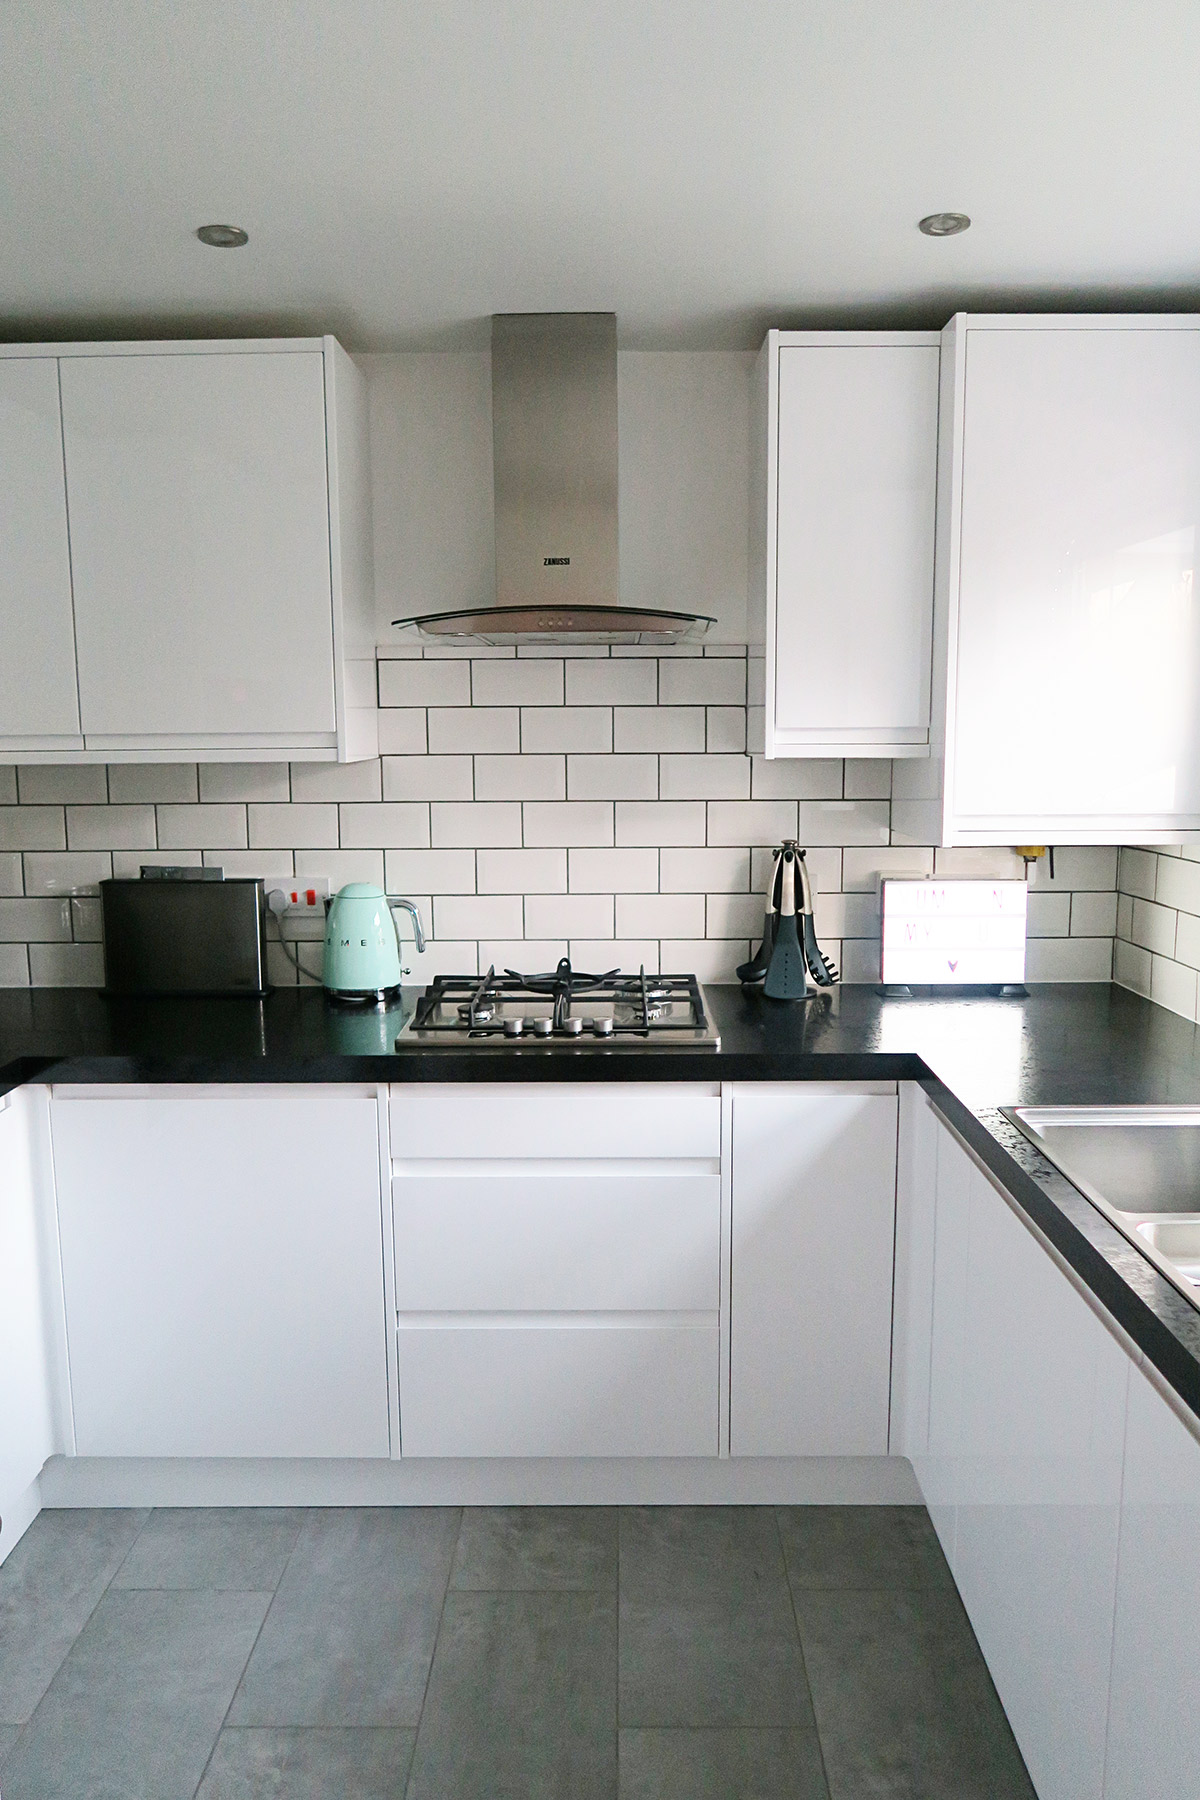 Designing our Dream Kitchen with Wickes- Our Final Makeover (Our Old House)